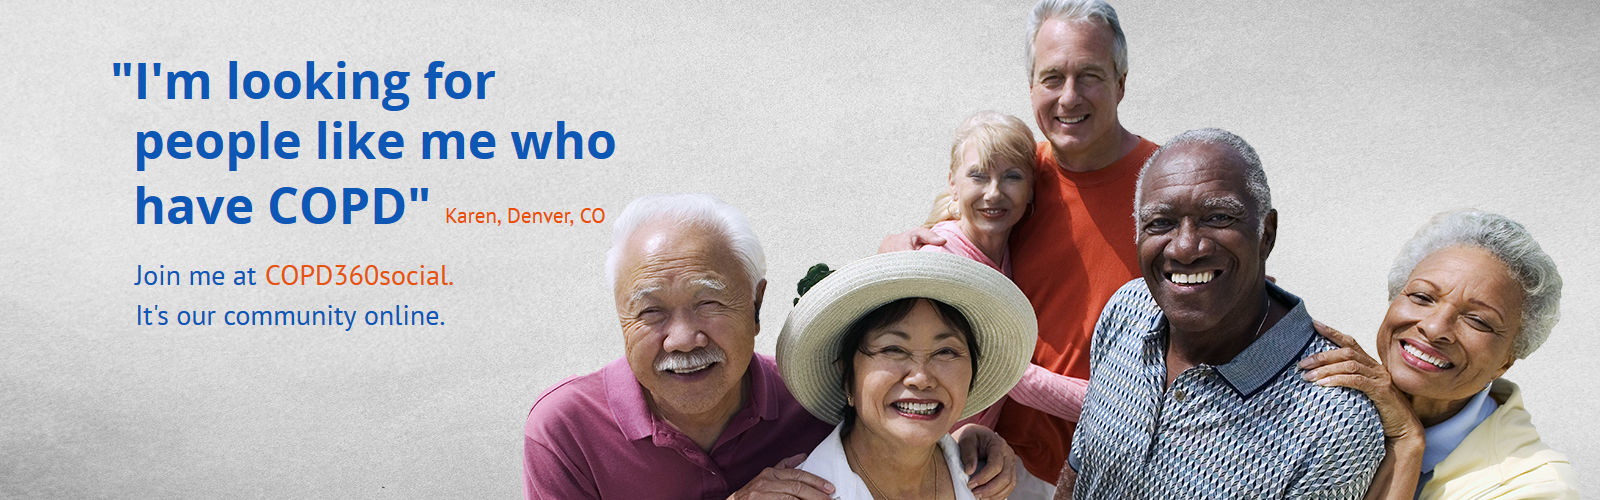 COPD360social | COPD Online Community and Support Group